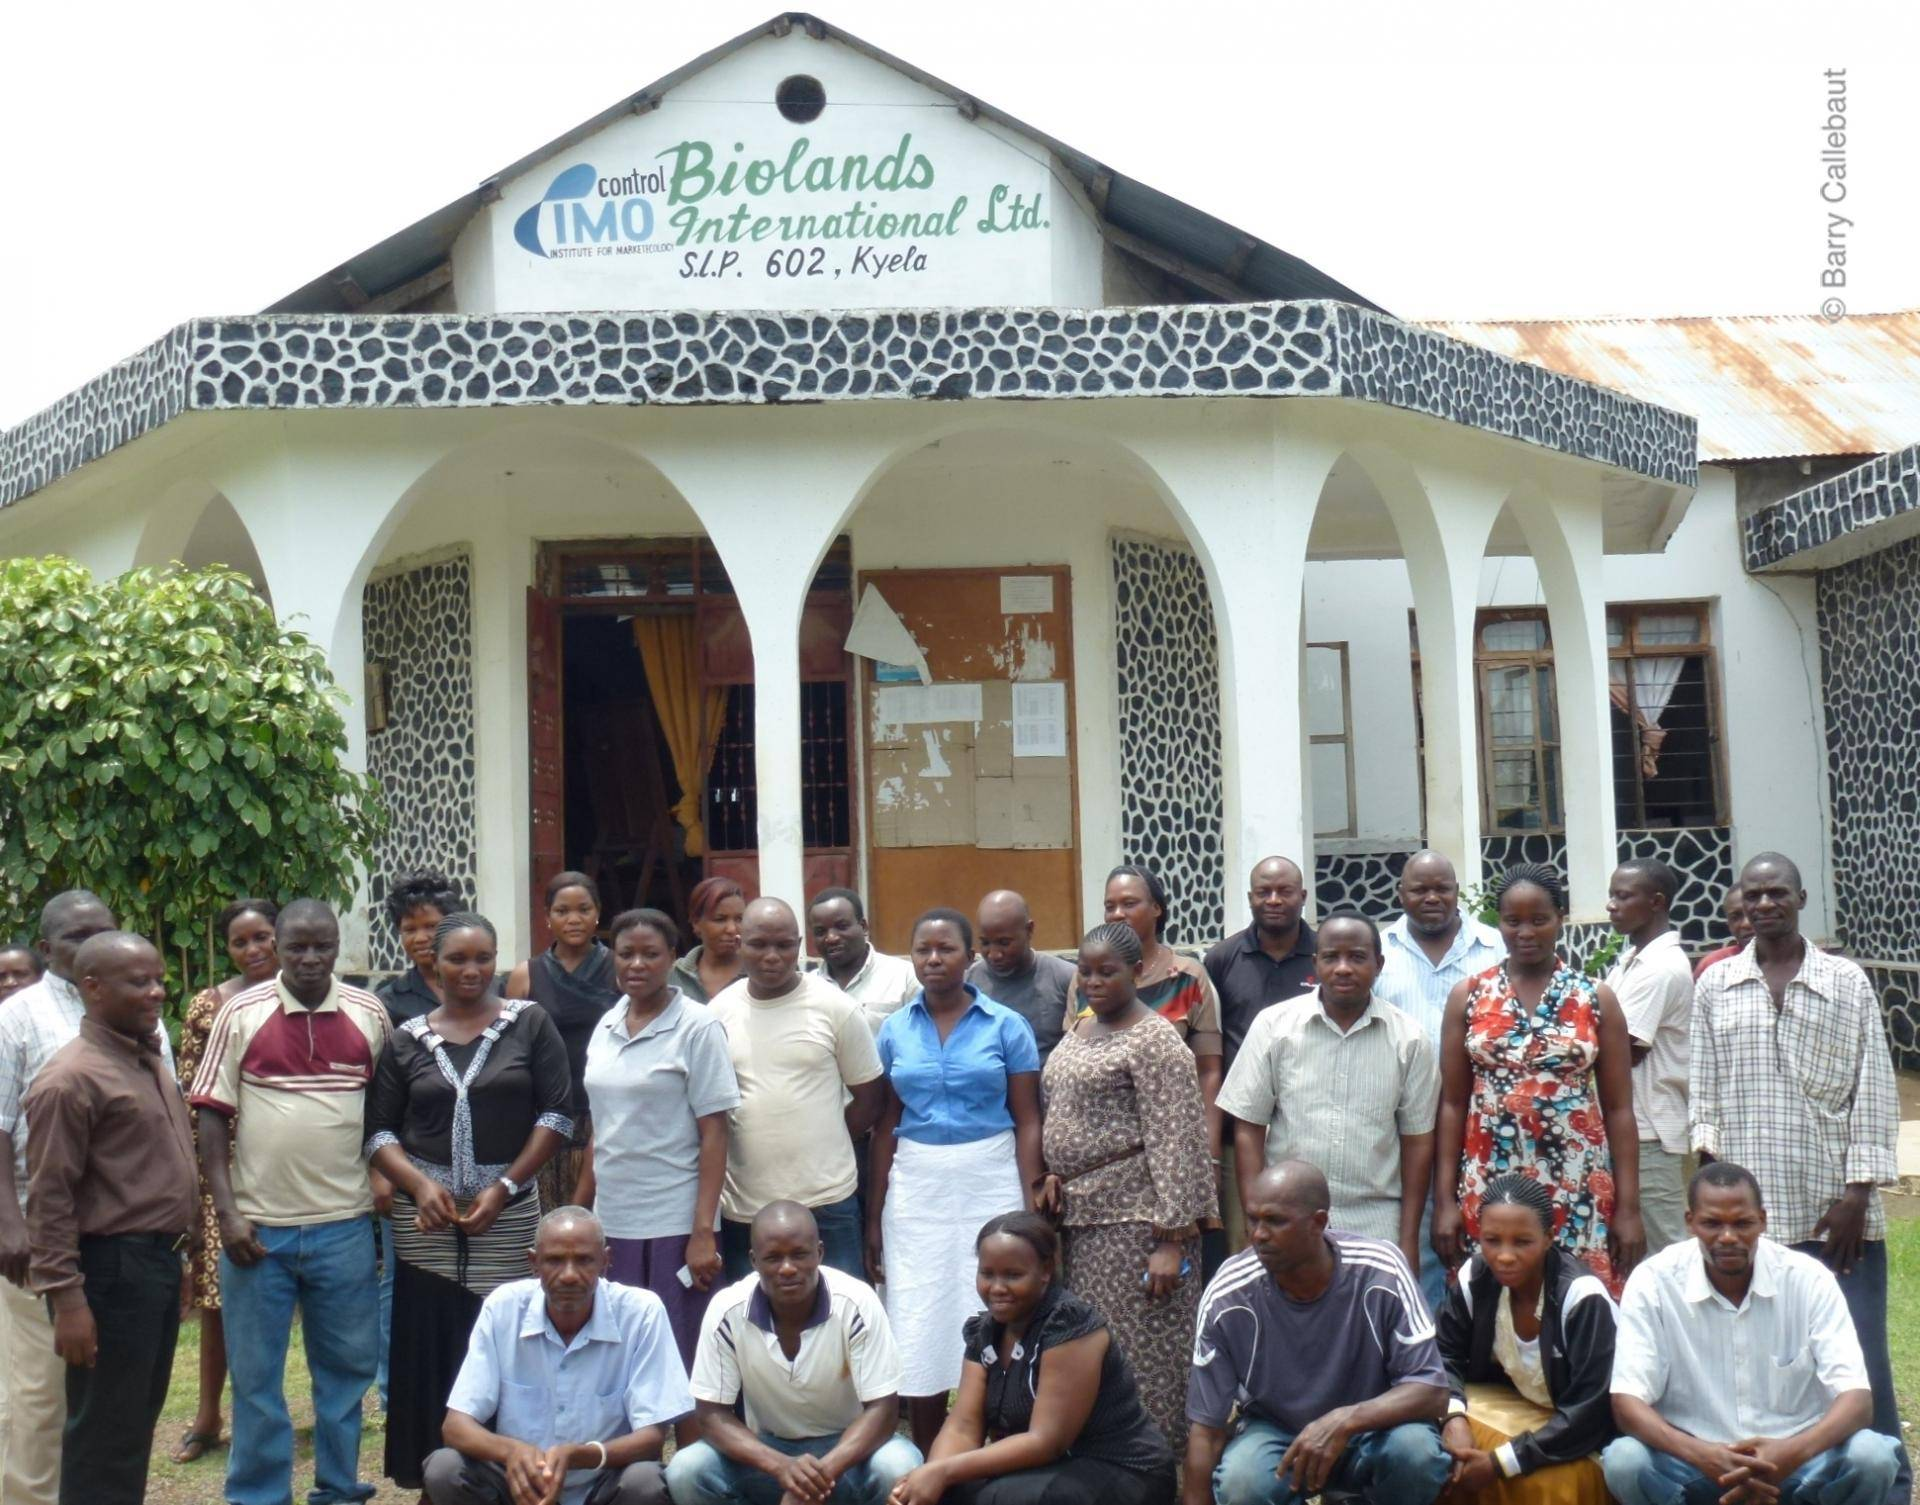 Biolands staff in front of the office in Kyela, Tanzania